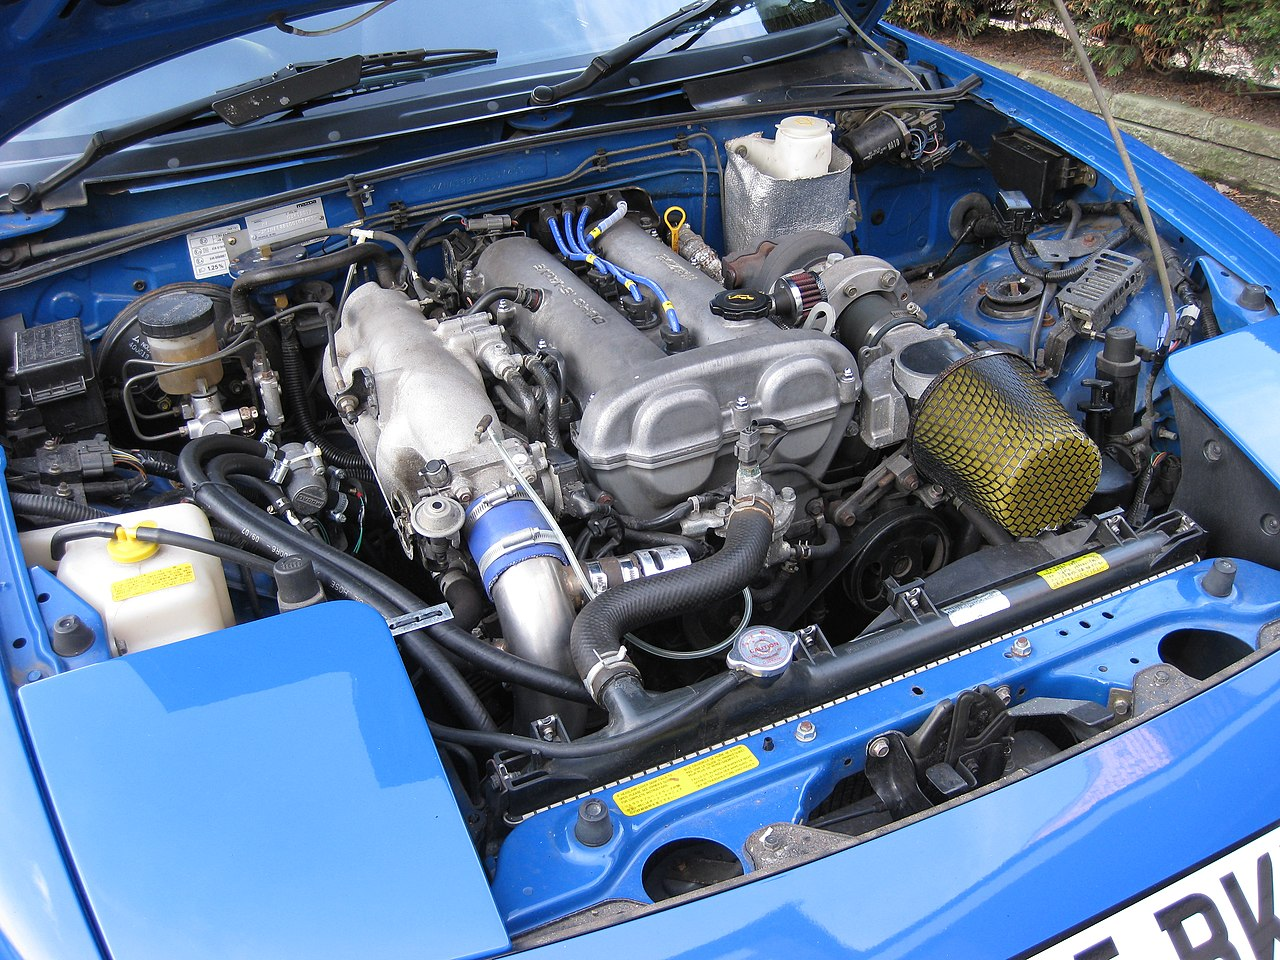 hight resolution of file 1990 mazda mx5 1 6 dohc 4 cylinder turbo jpg wikimedia commons 2003 miata se